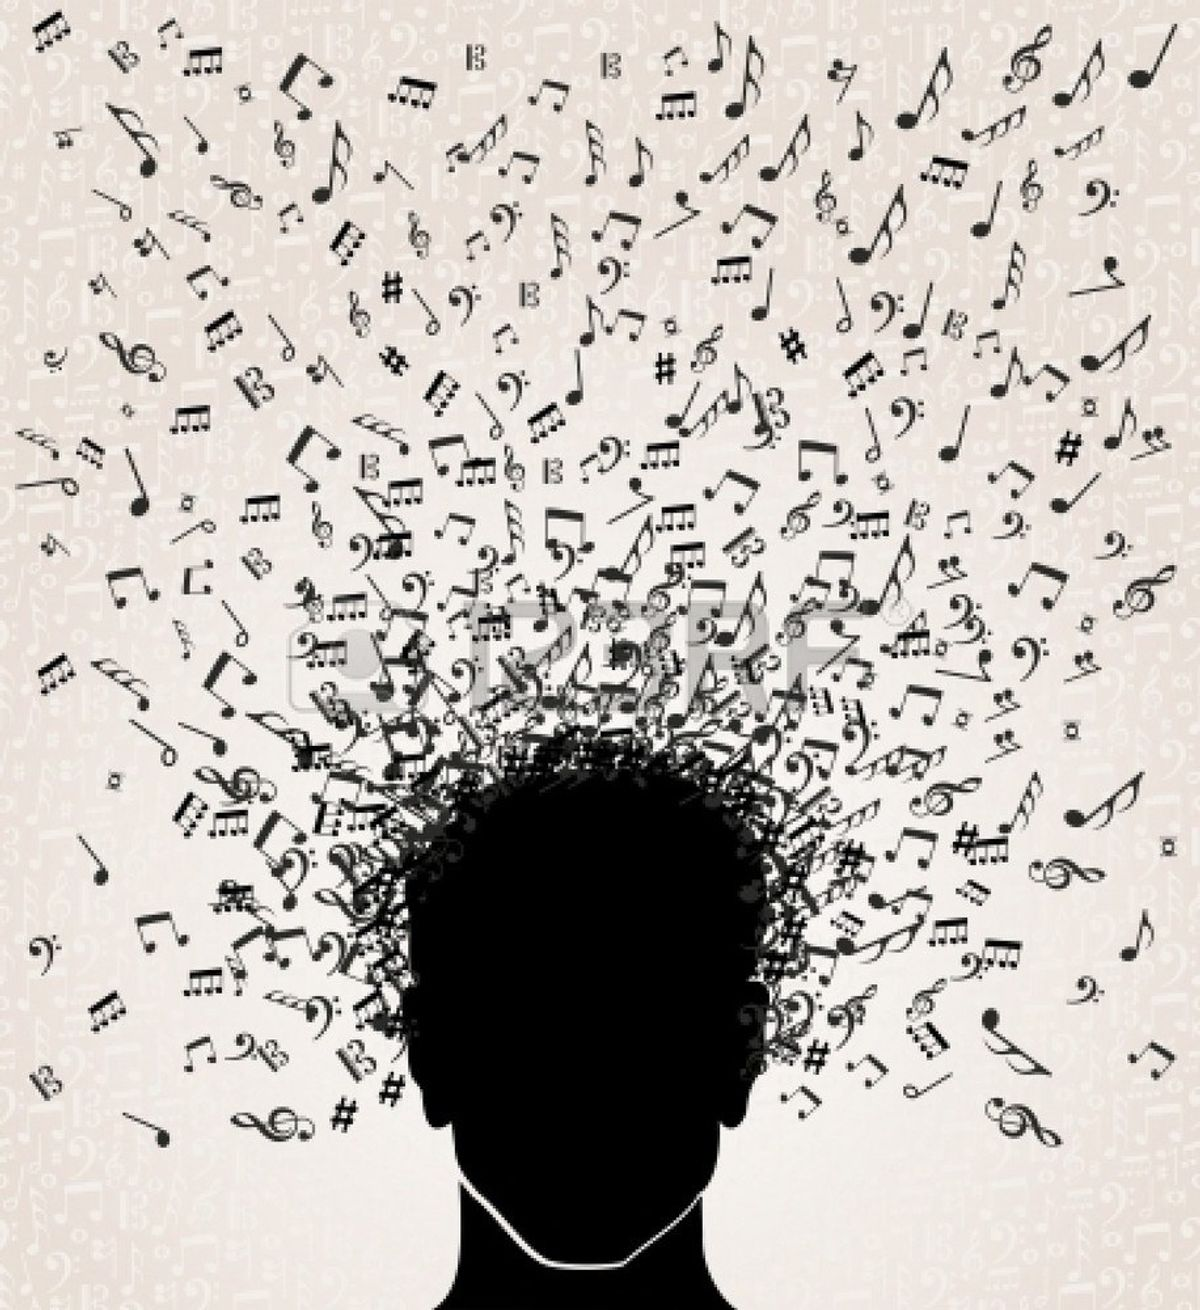 10 Reasons Why We Need Music In Schools